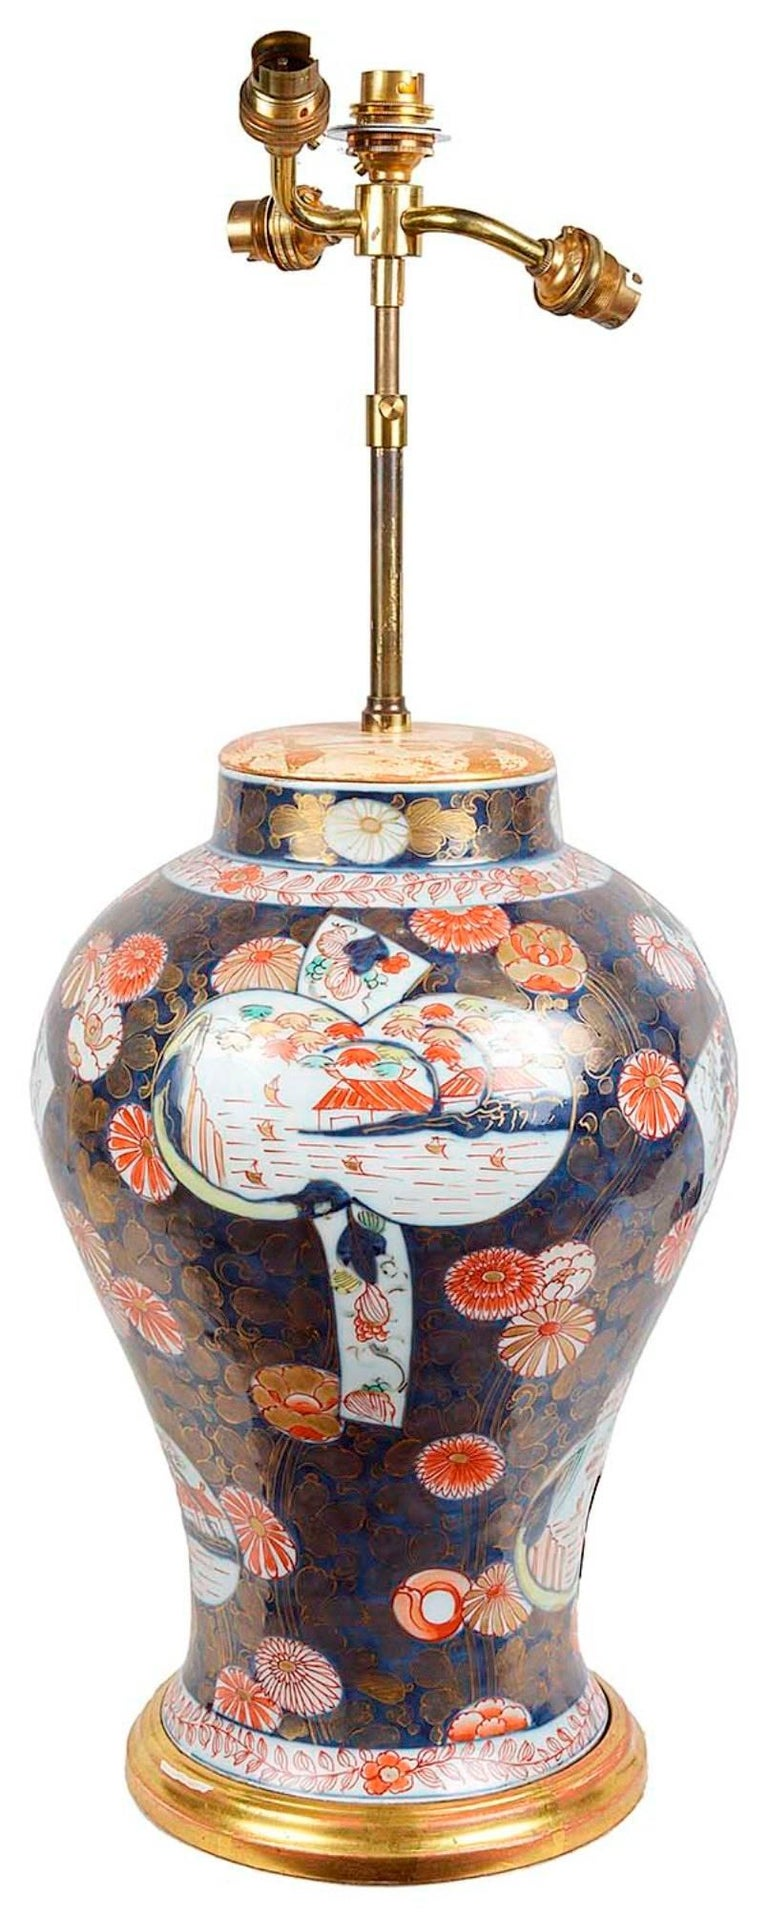 A very decorative 19th century Samson Imari bulbous vase, having classical blue and orange Imari colors. Depicting blossoms, leaves and panels with boats on a lake with buildings in the back ground.